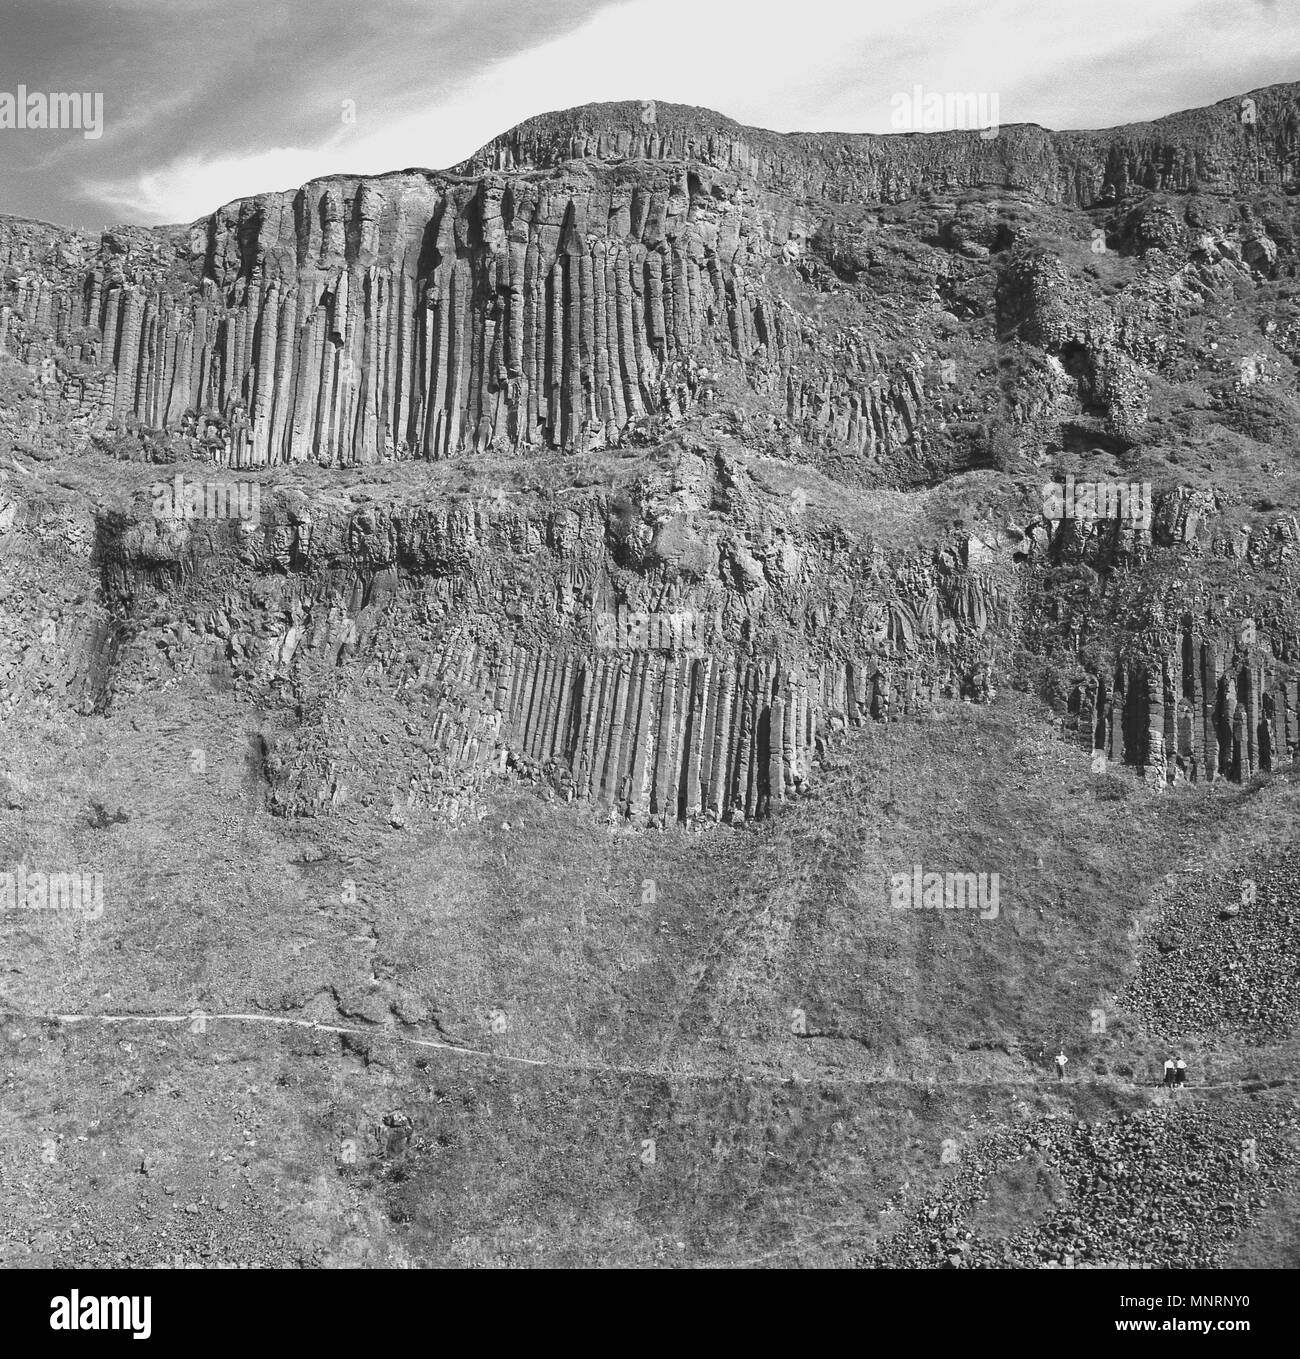 1950s, historical picture of the incredible ancient rock formations on the cliffs at the Giants Causeway, Co. Antrim, Northern Ireland. - Stock Image